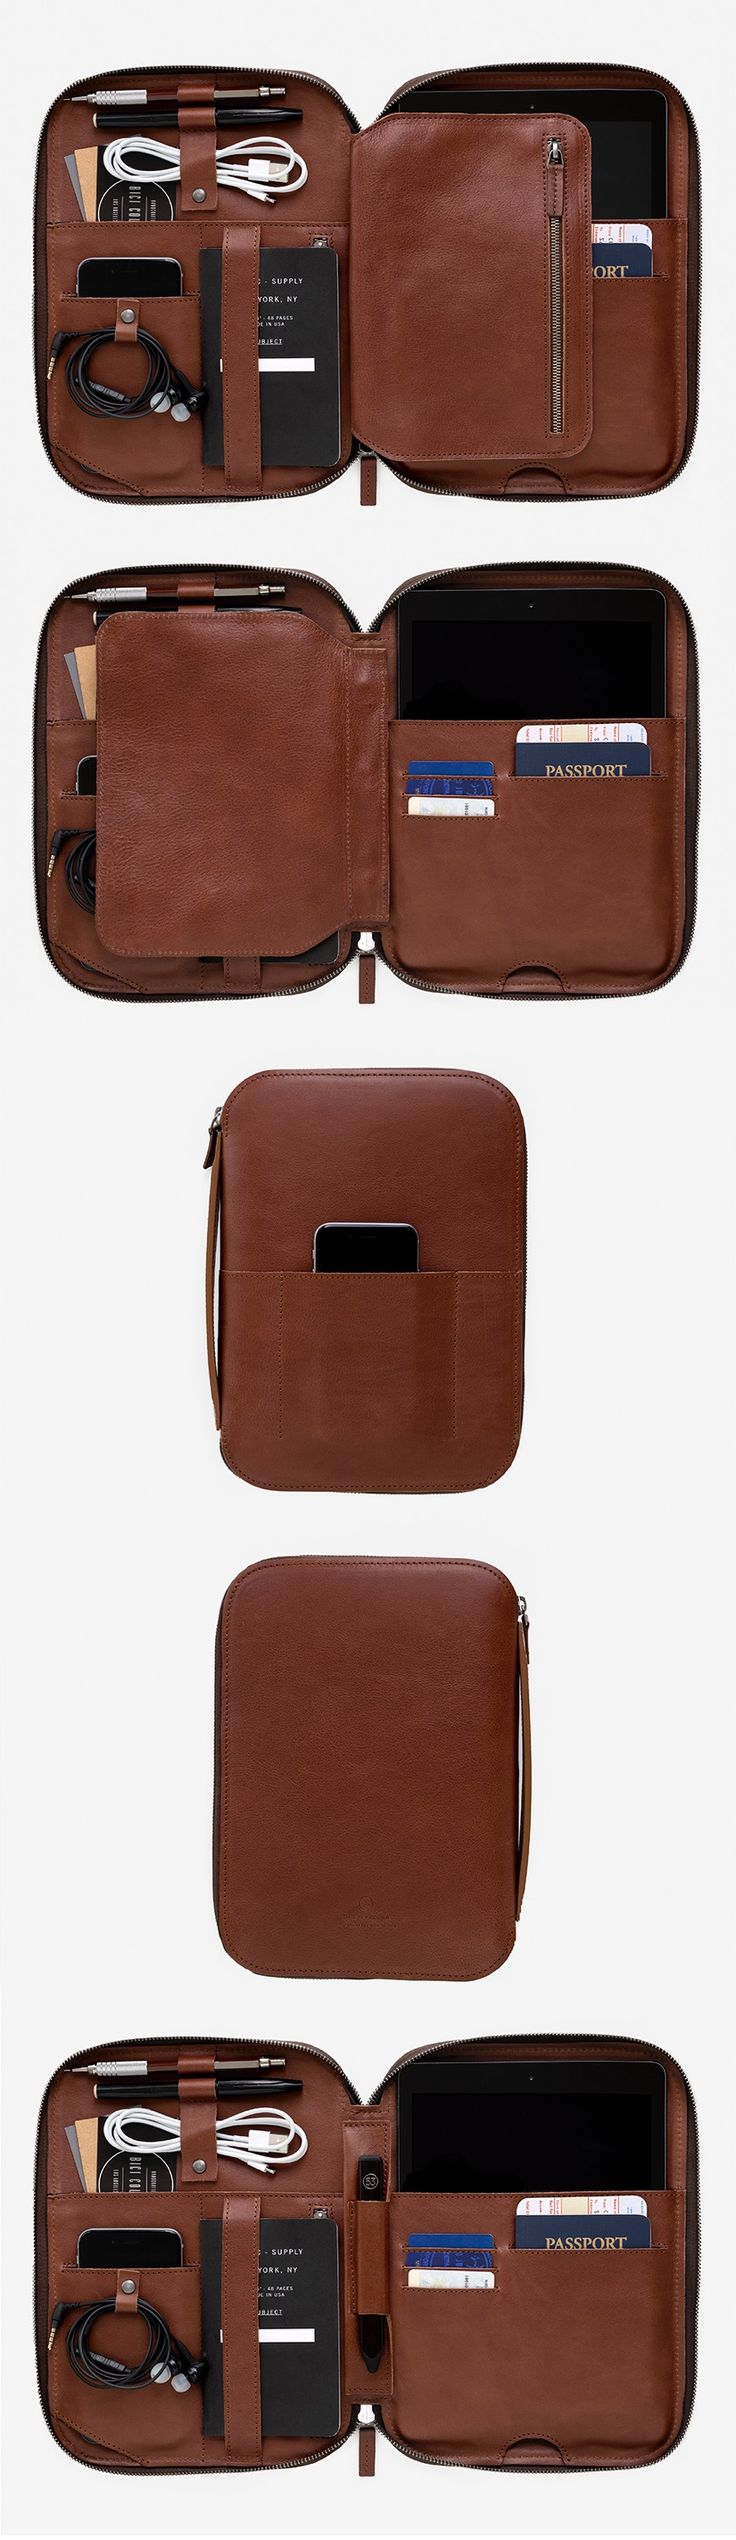 mod tablet - leather case for you tech, tablet, cords, passport, pens, pencils, stylus, phone, notebook & papers